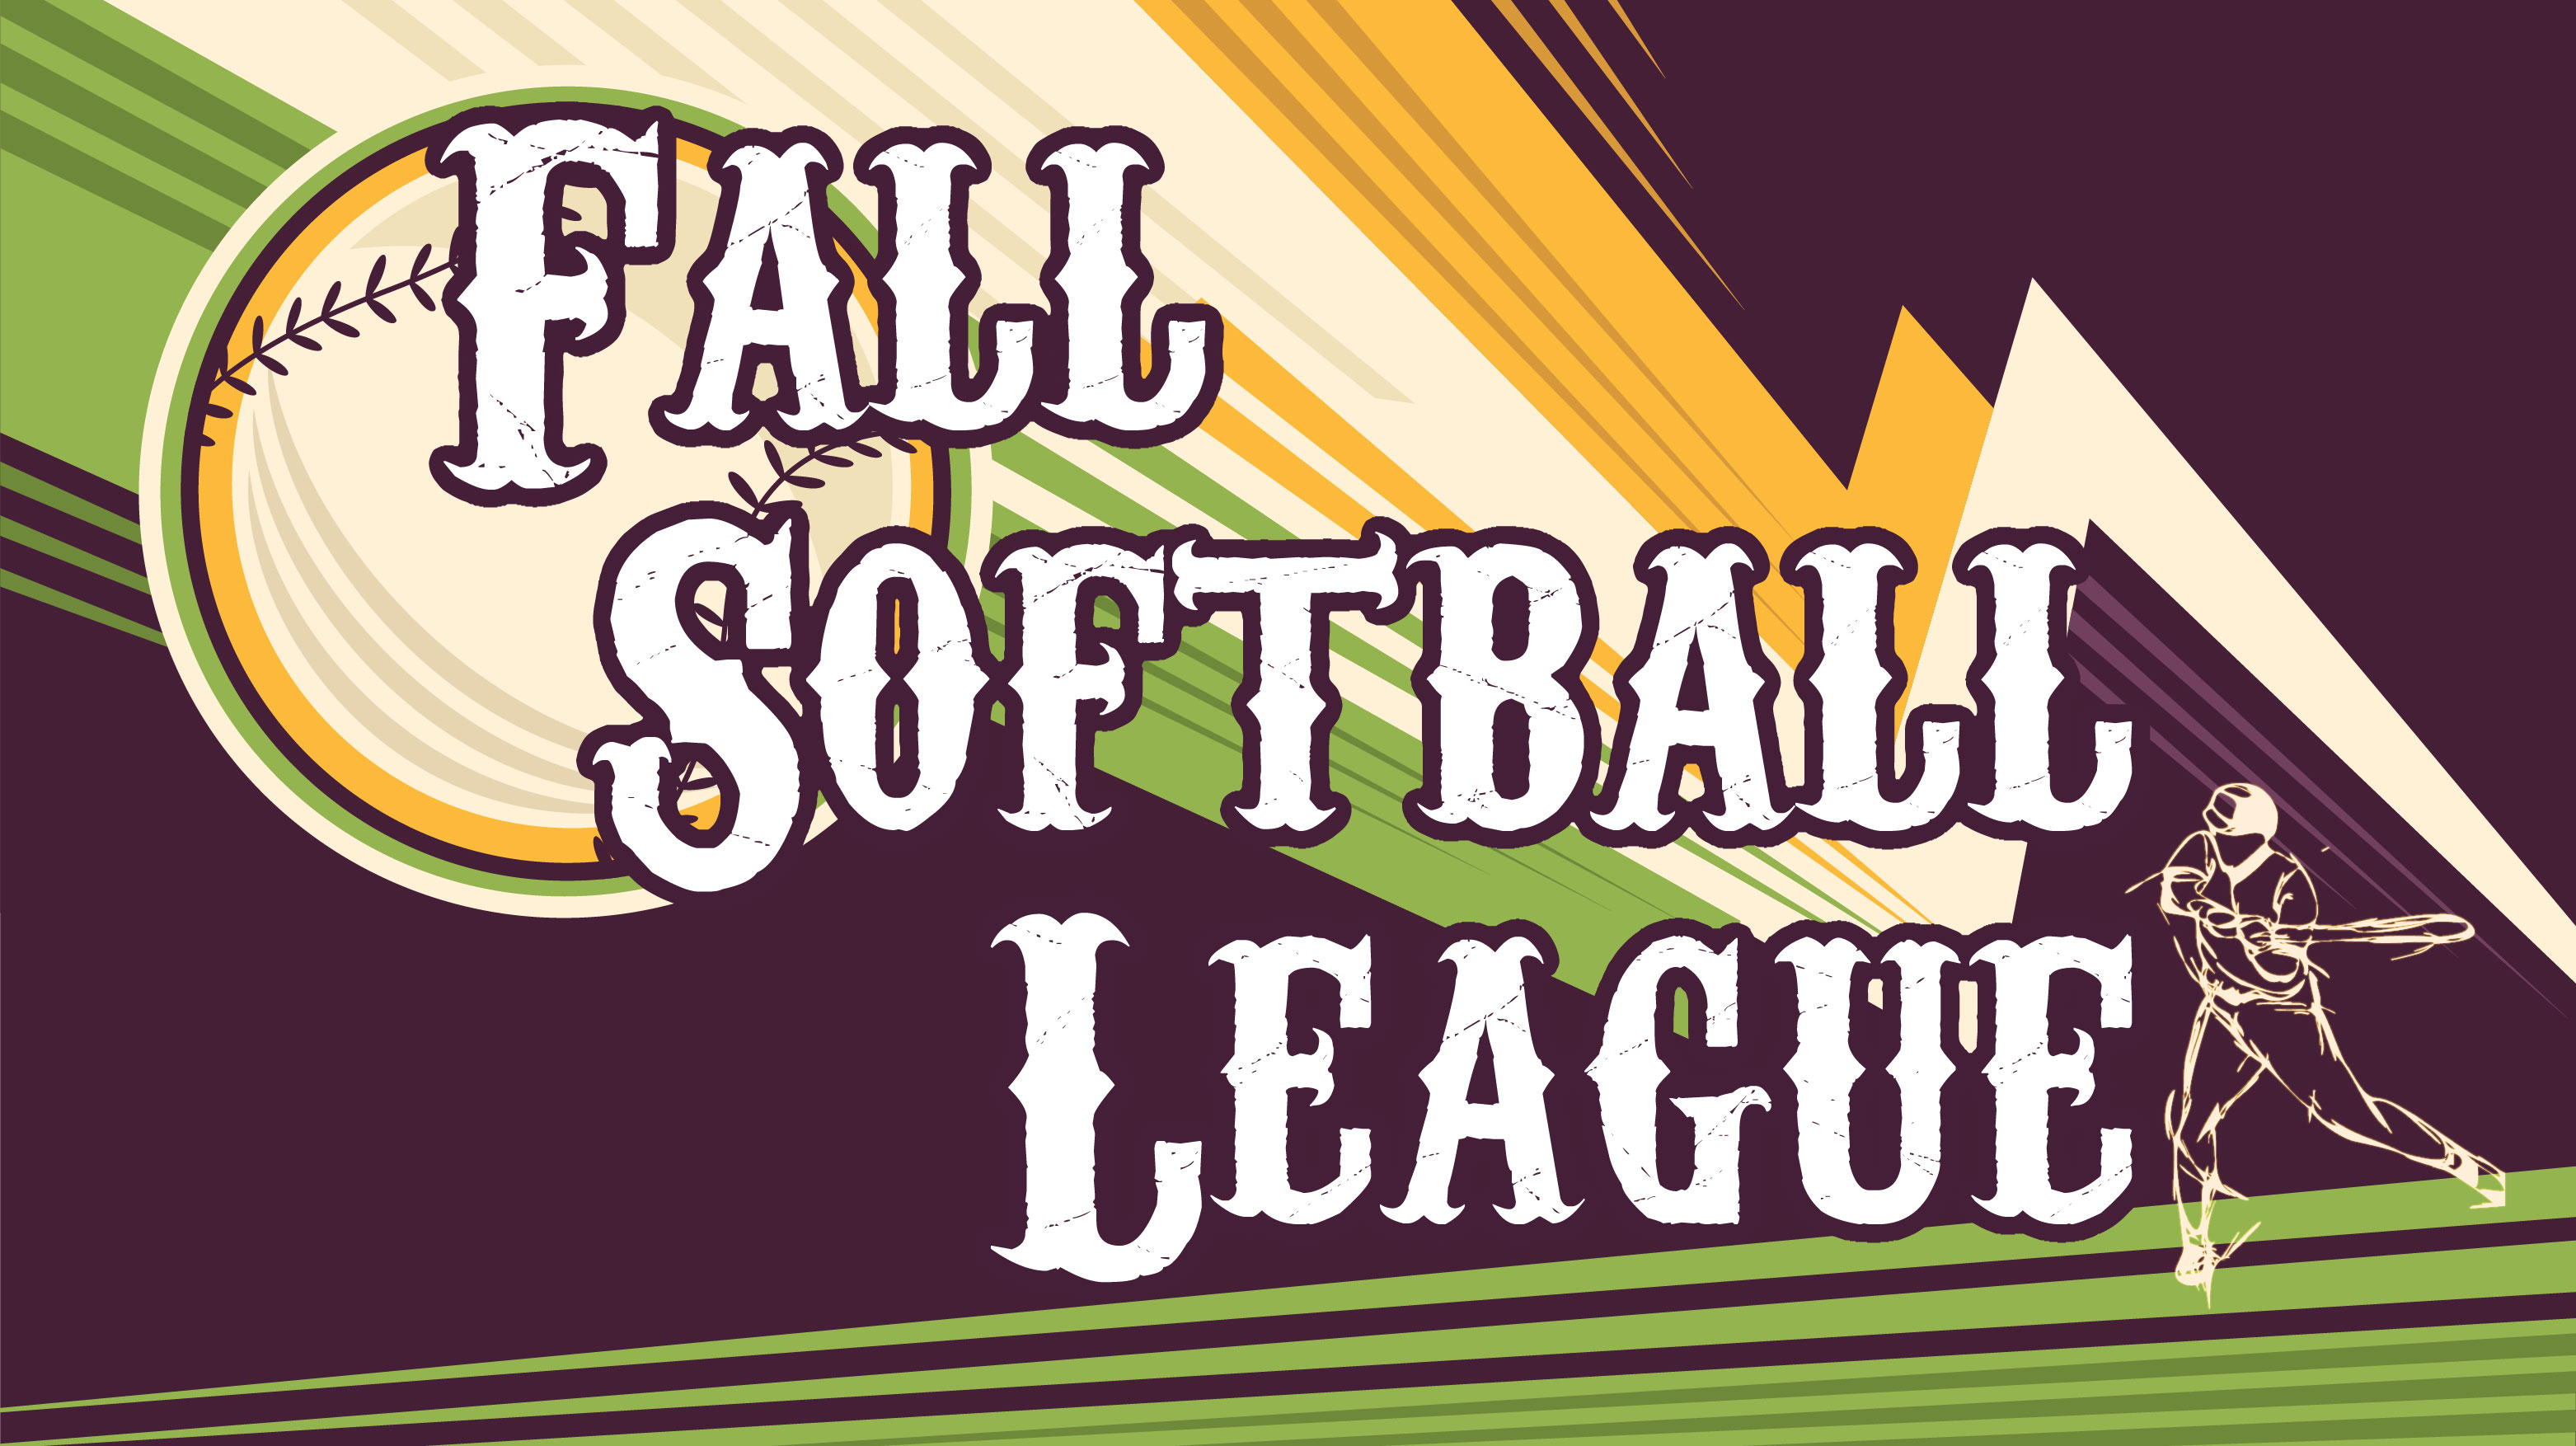 Fall Softball League